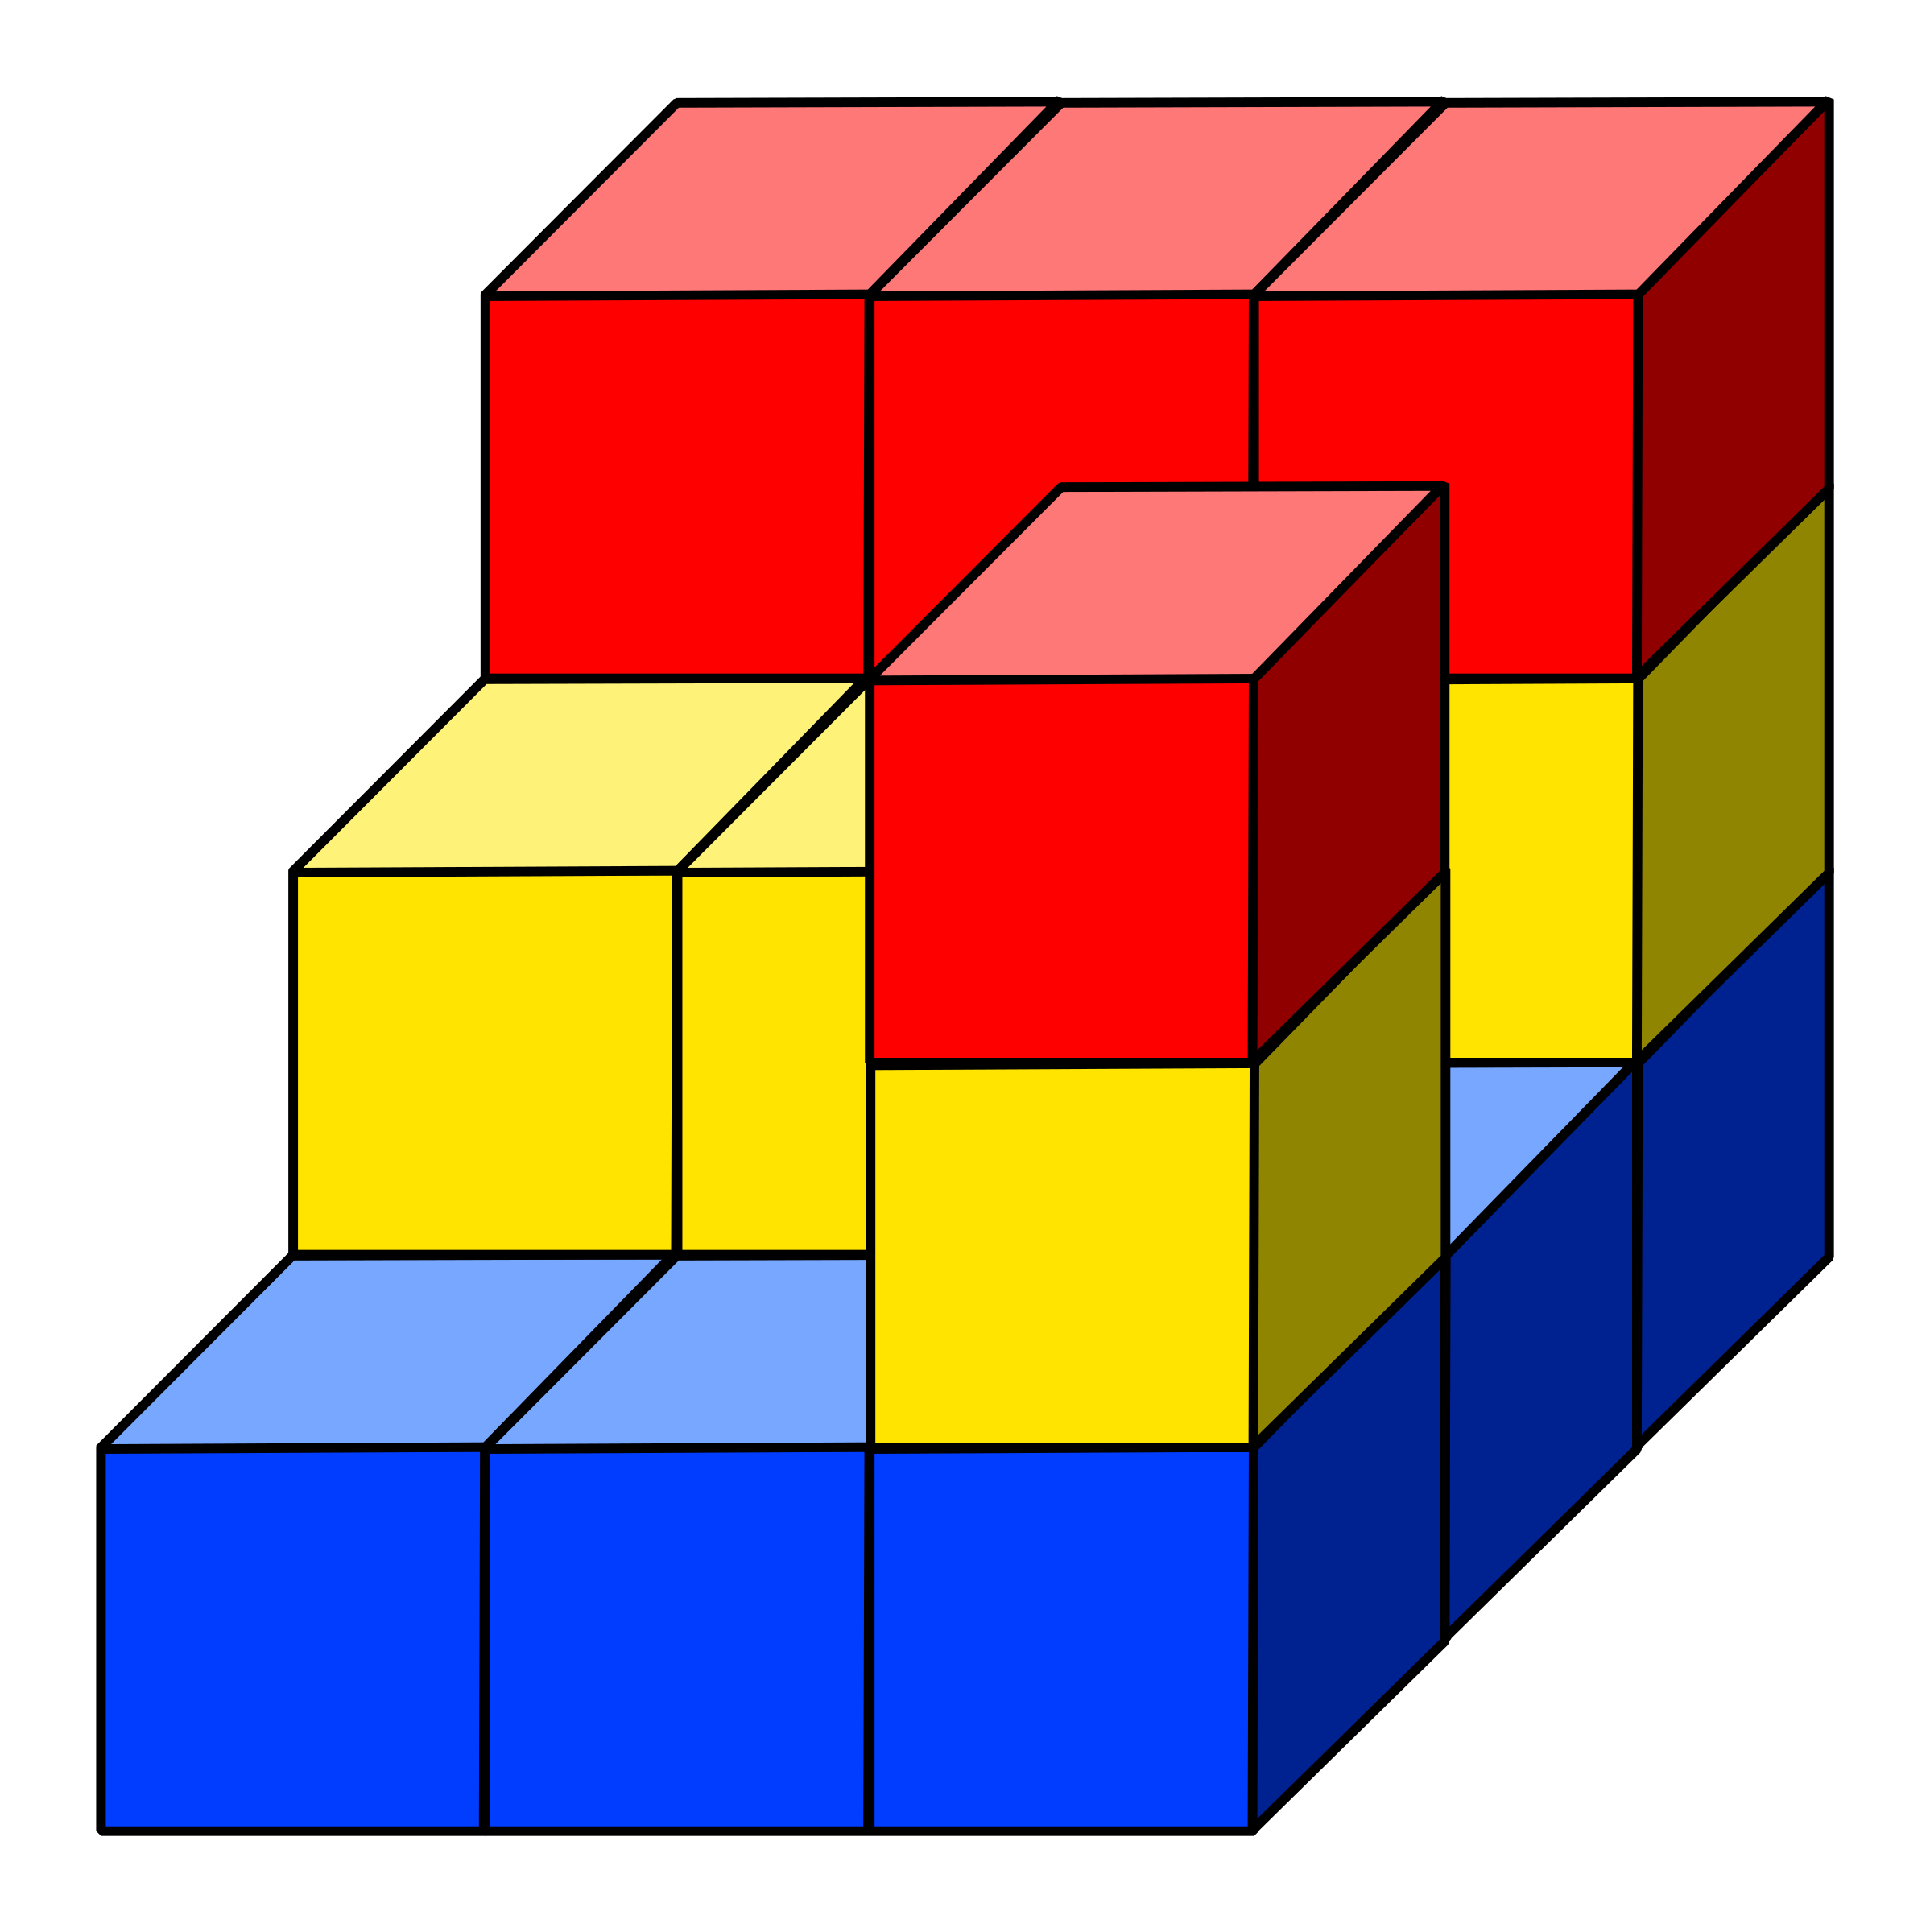 jpg transparent stock Why clipart cubes. Cube tower big image.